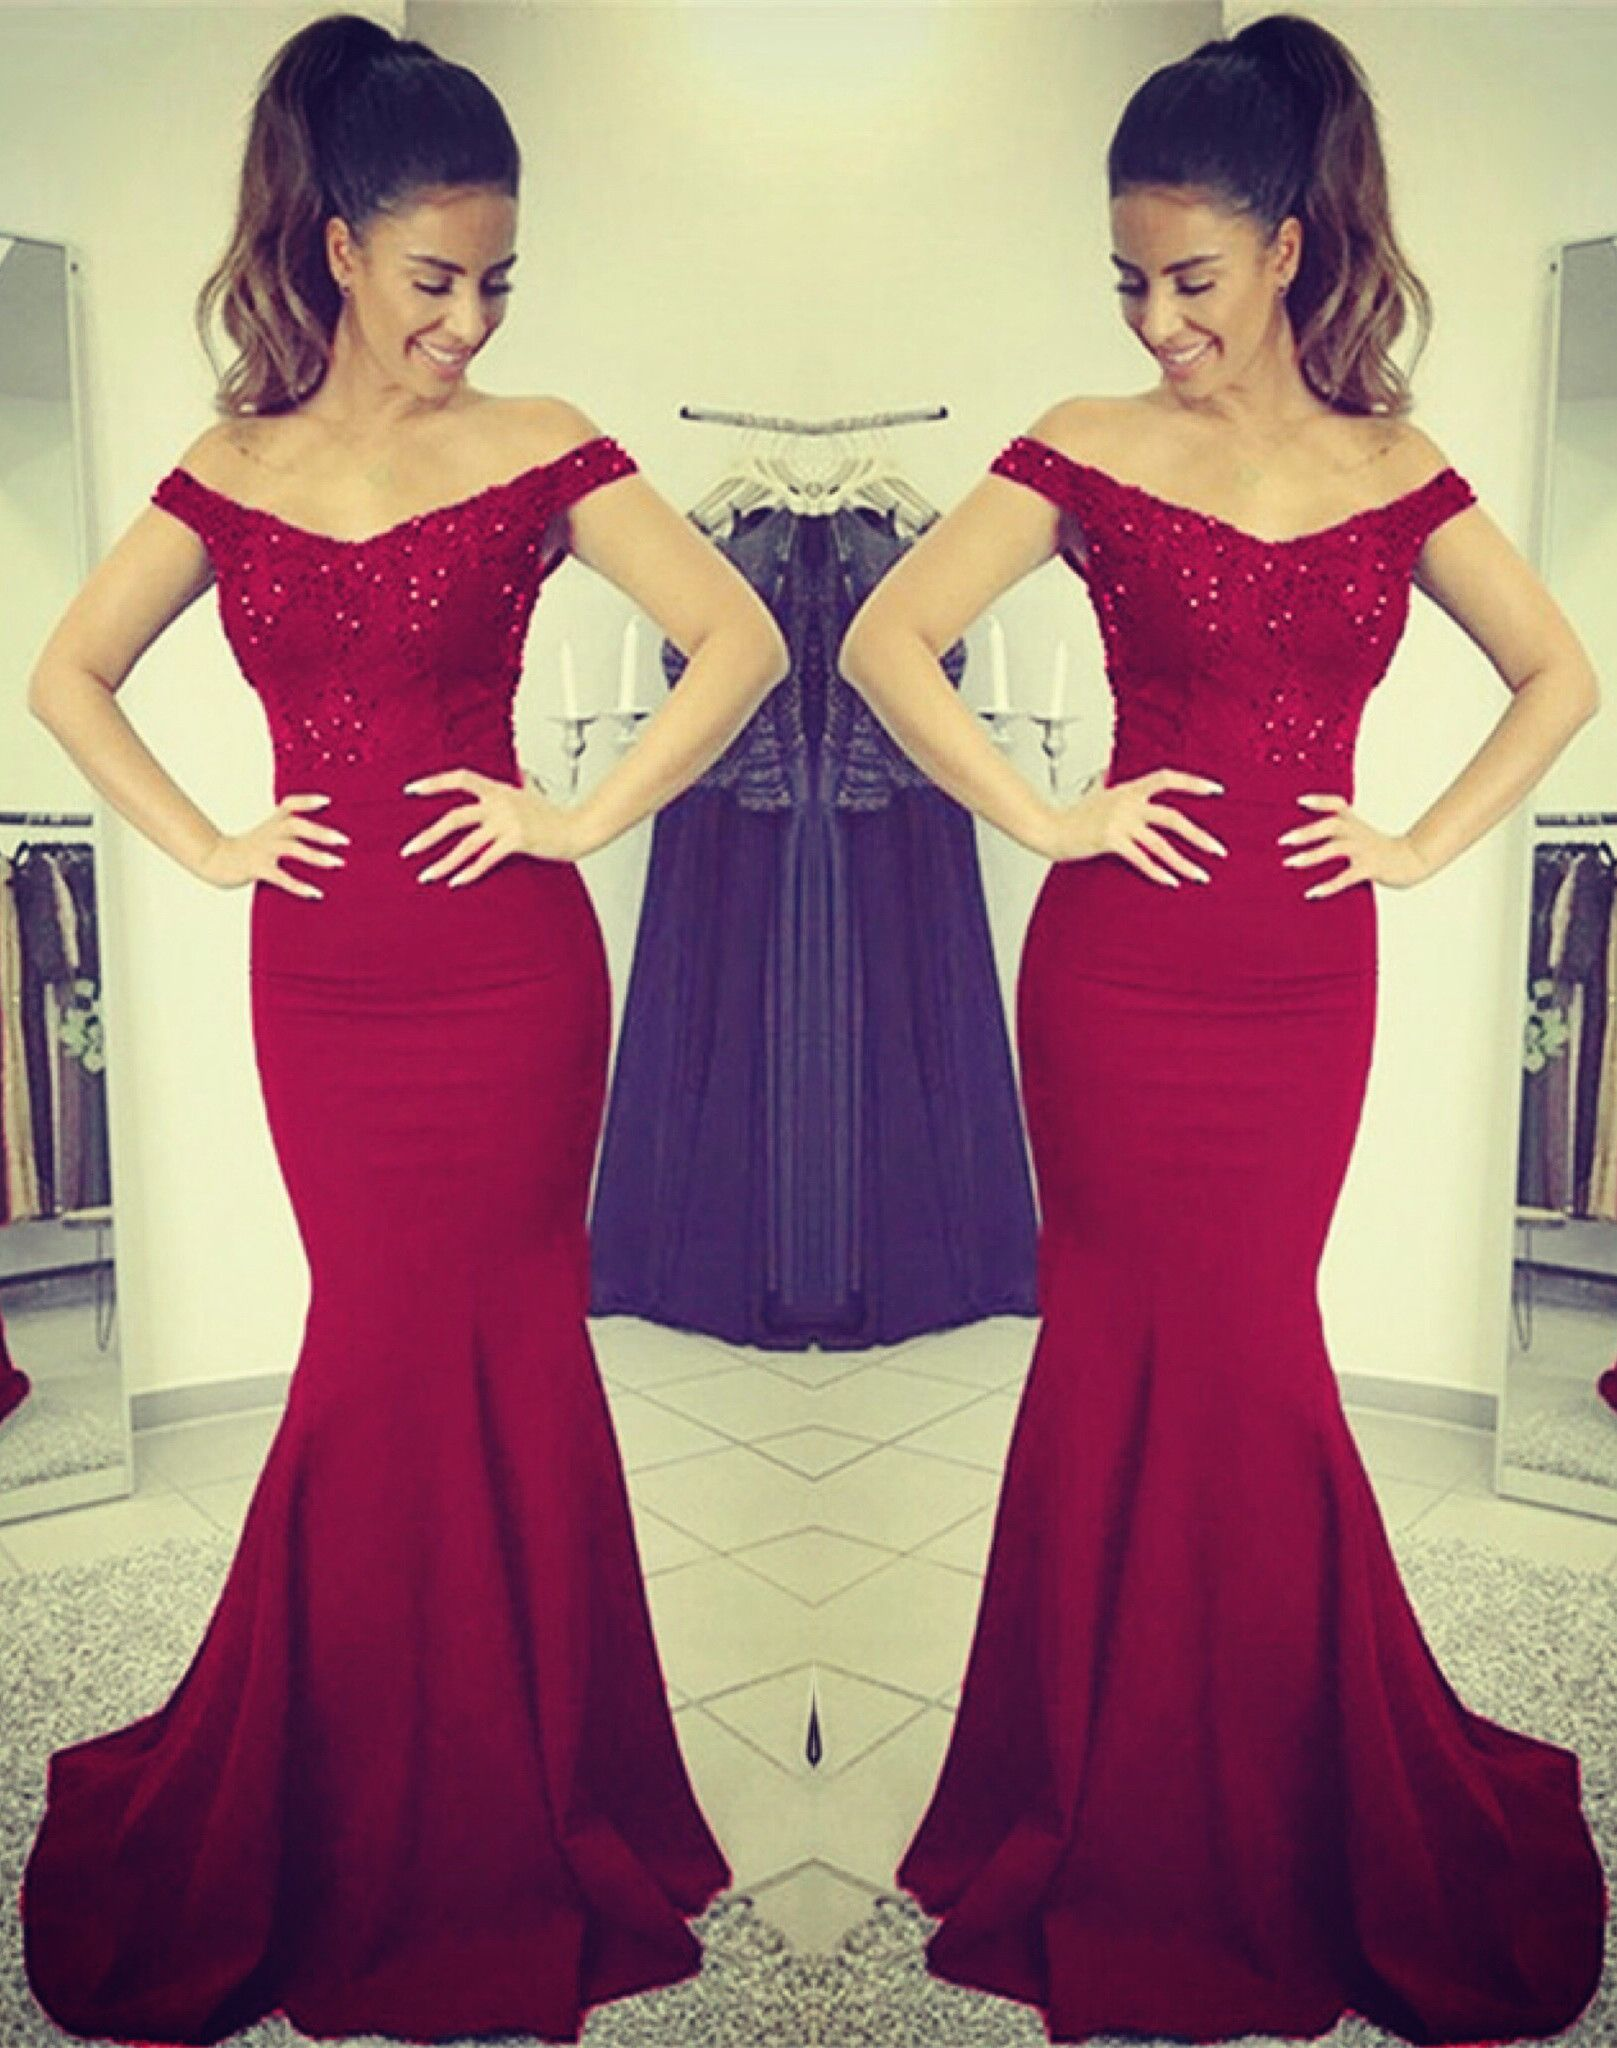 41b58c3d41c Burgundy Lace Bridesmaid Dresses Uk - raveitsafe